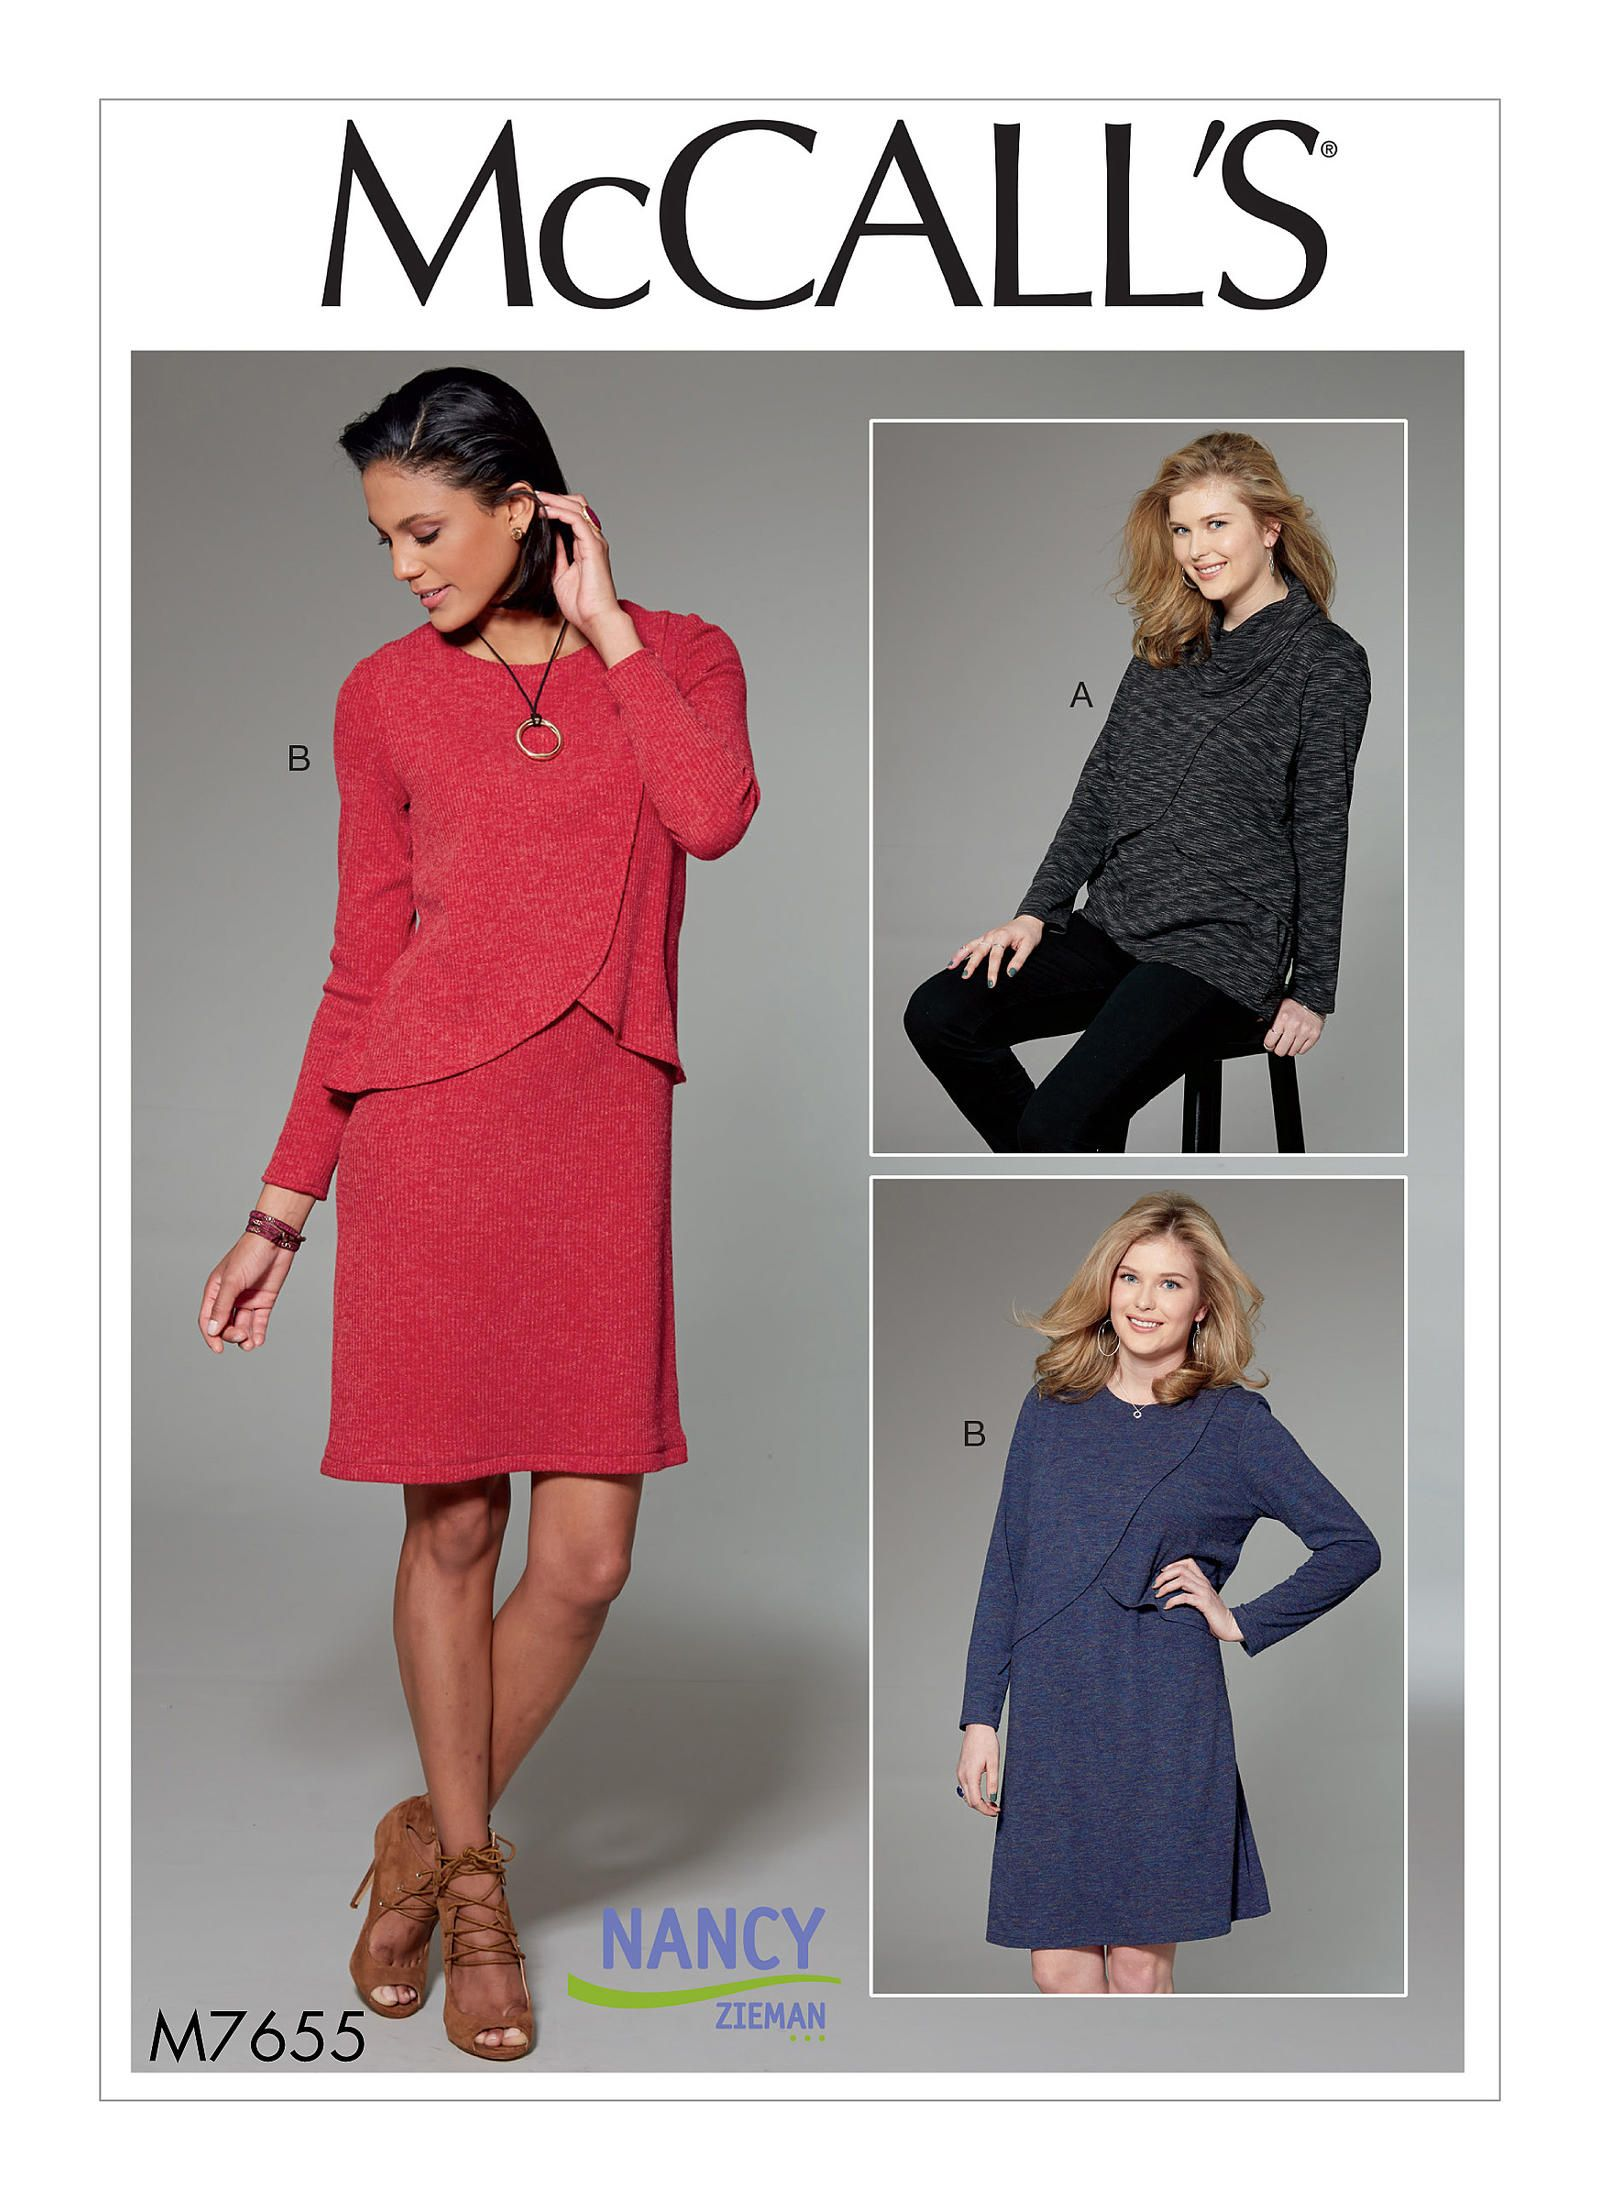 Sew a knit overlay tunic or dress nancy zieman overlay and tunics knit overlay tunic dress mccall pattern company m7655 by nancy zieman sewing with jeuxipadfo Image collections